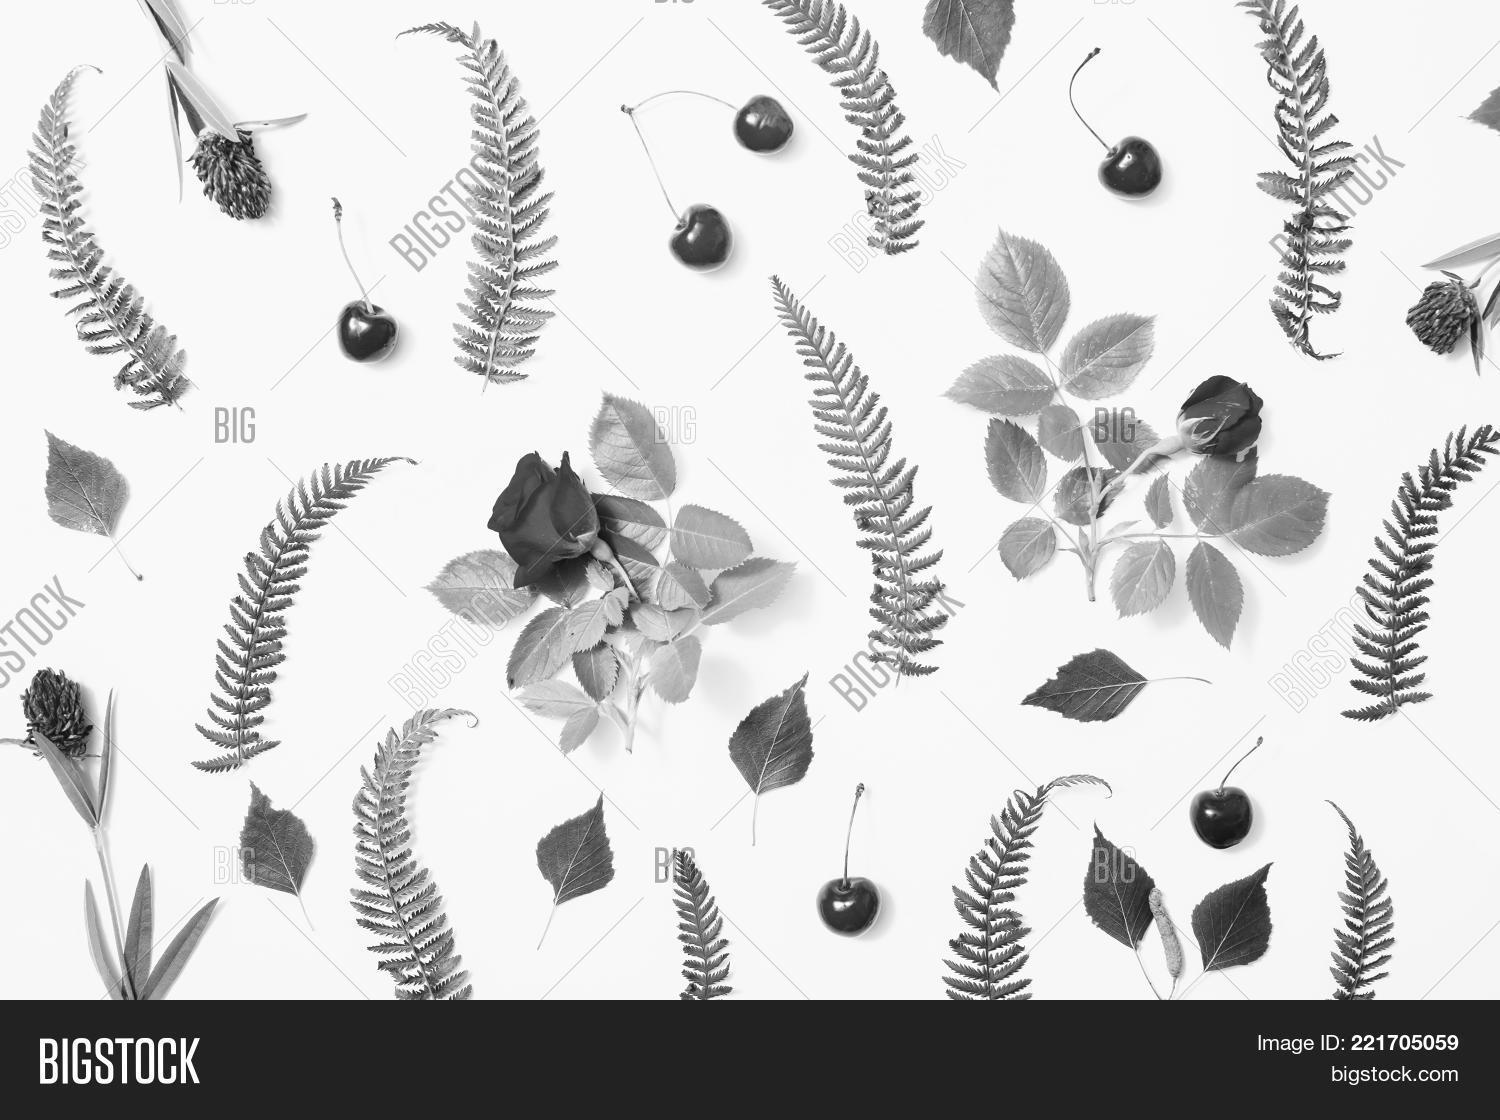 Pattern Blades Grass Image Photo Free Trial Bigstock